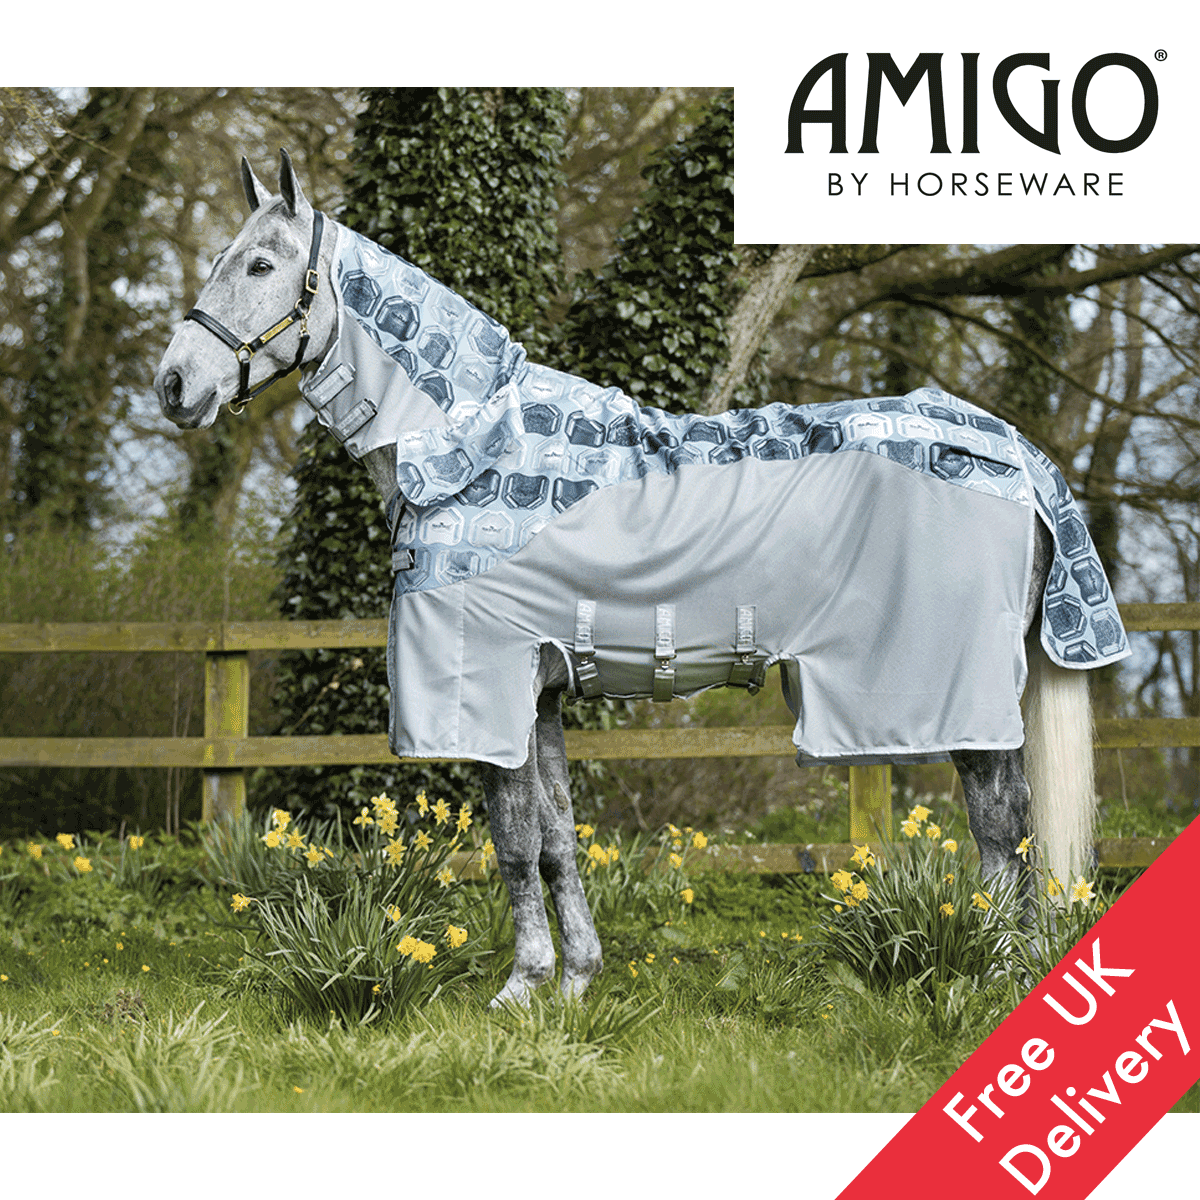 Horseware Amigo Three In One Vamoose Fliegen Turnout Rug FREE UK Shipping